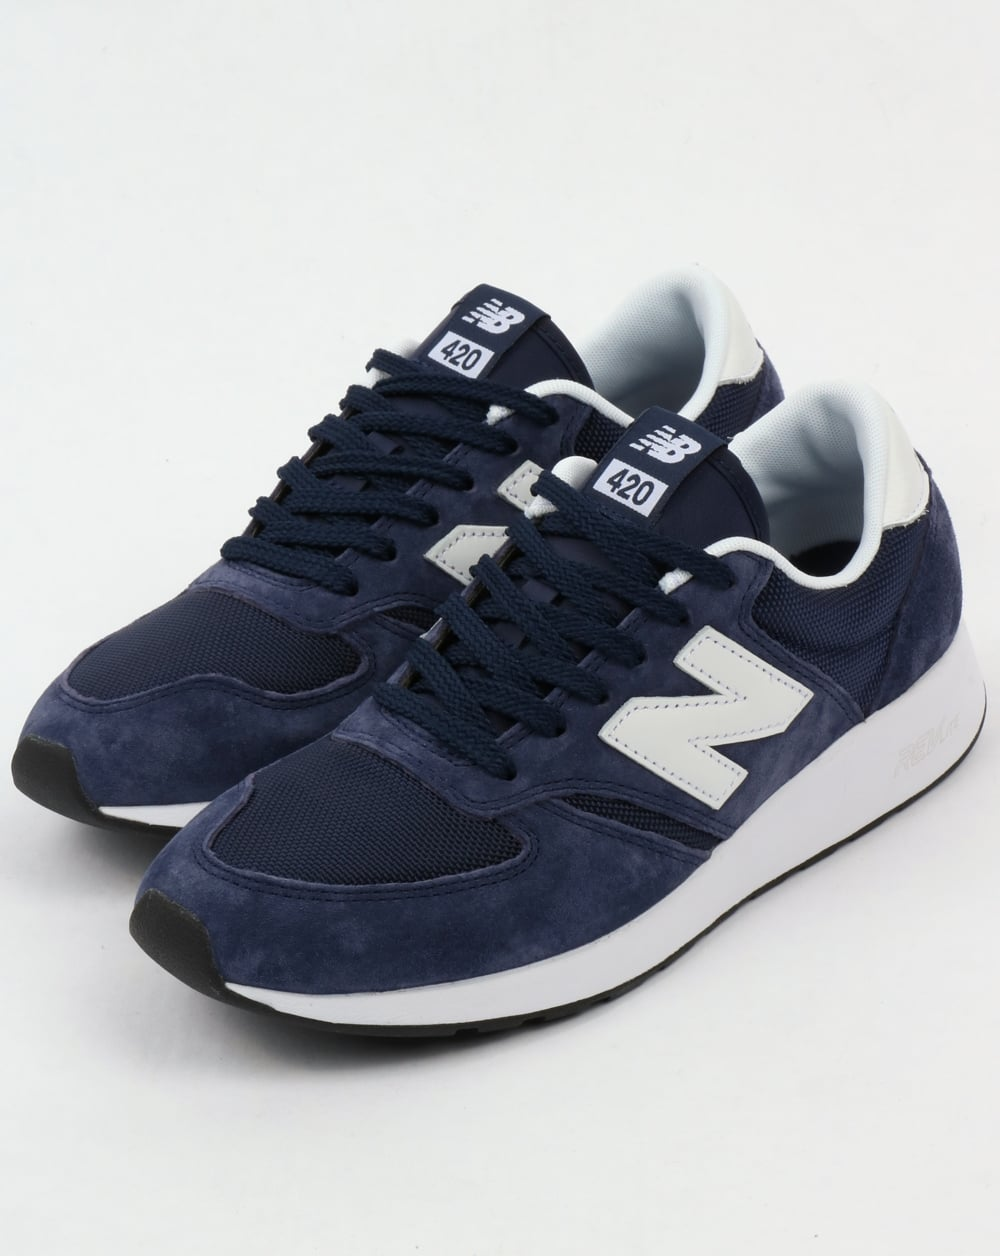 new balance 420 navy and black